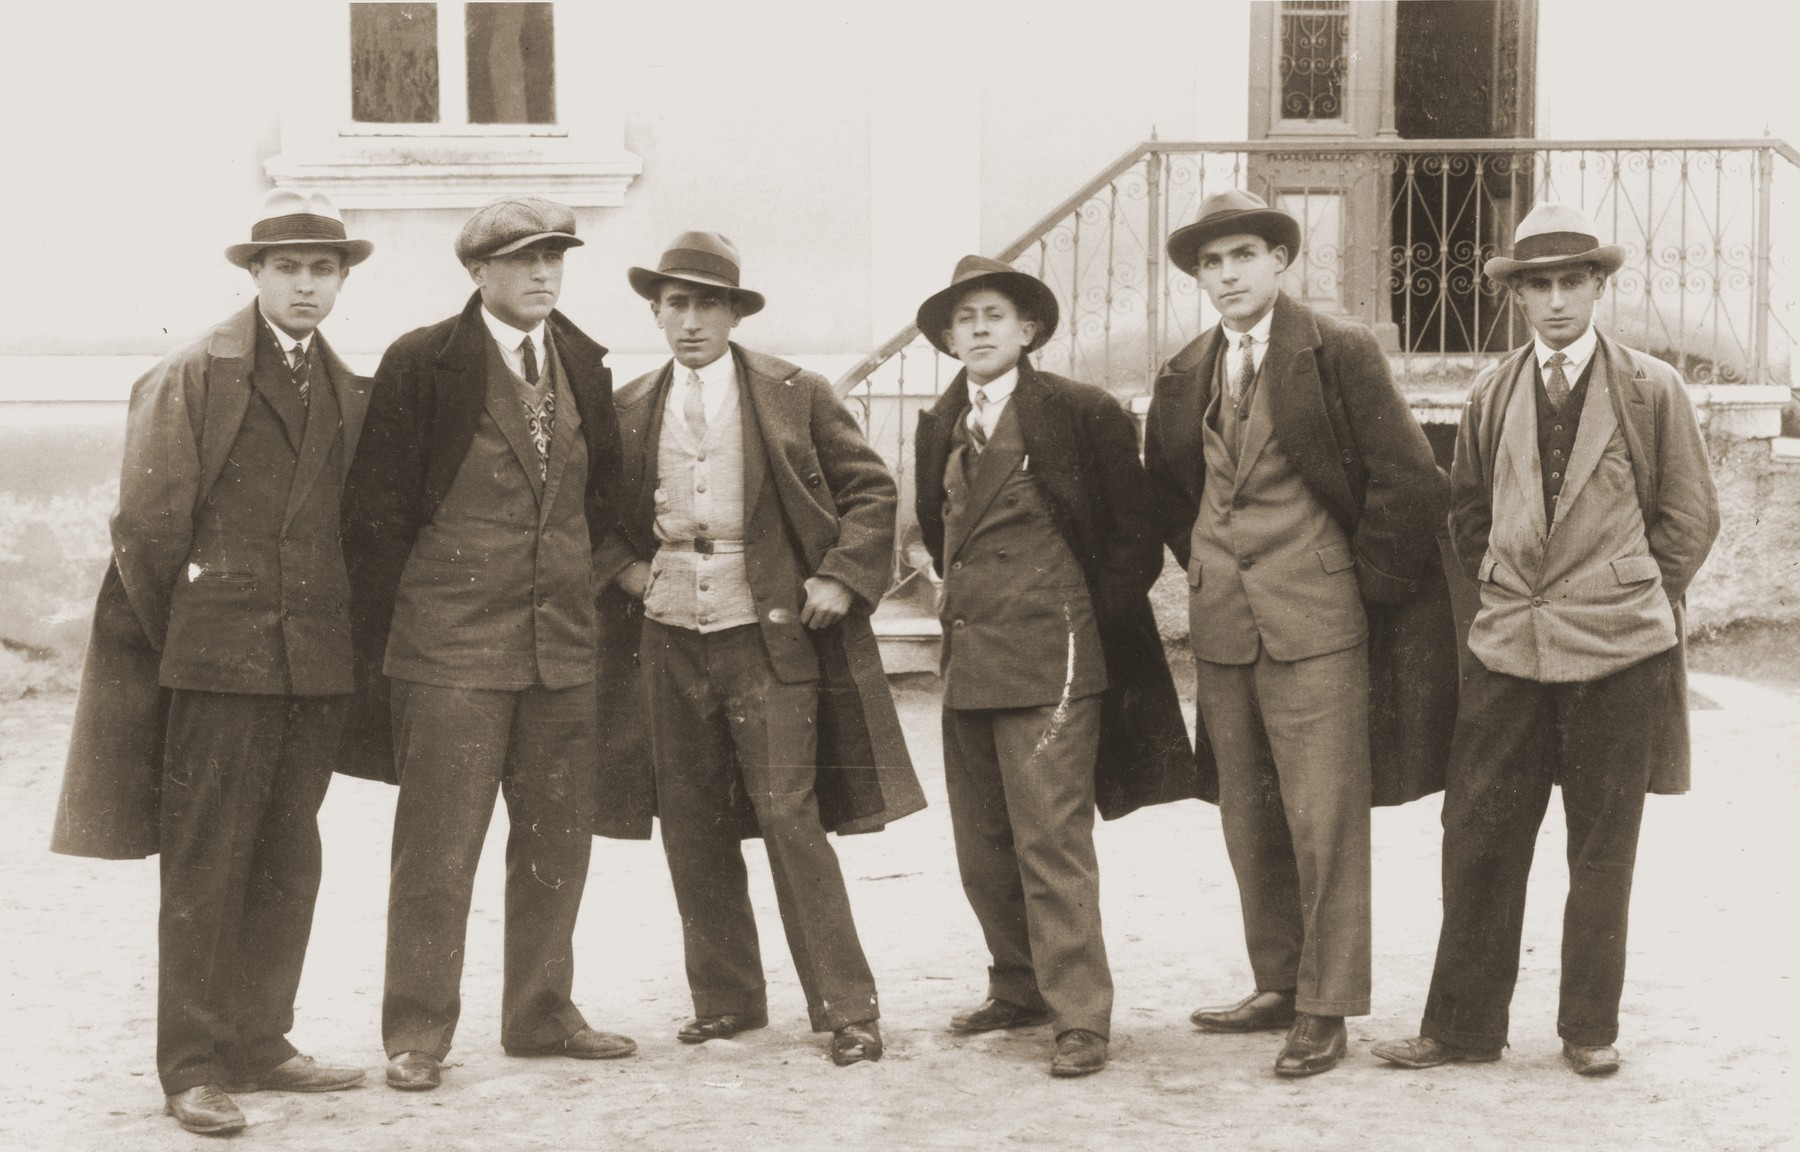 A group of young Jewish men in jackets and ties pose outside a building in Bitola, Macedonia.